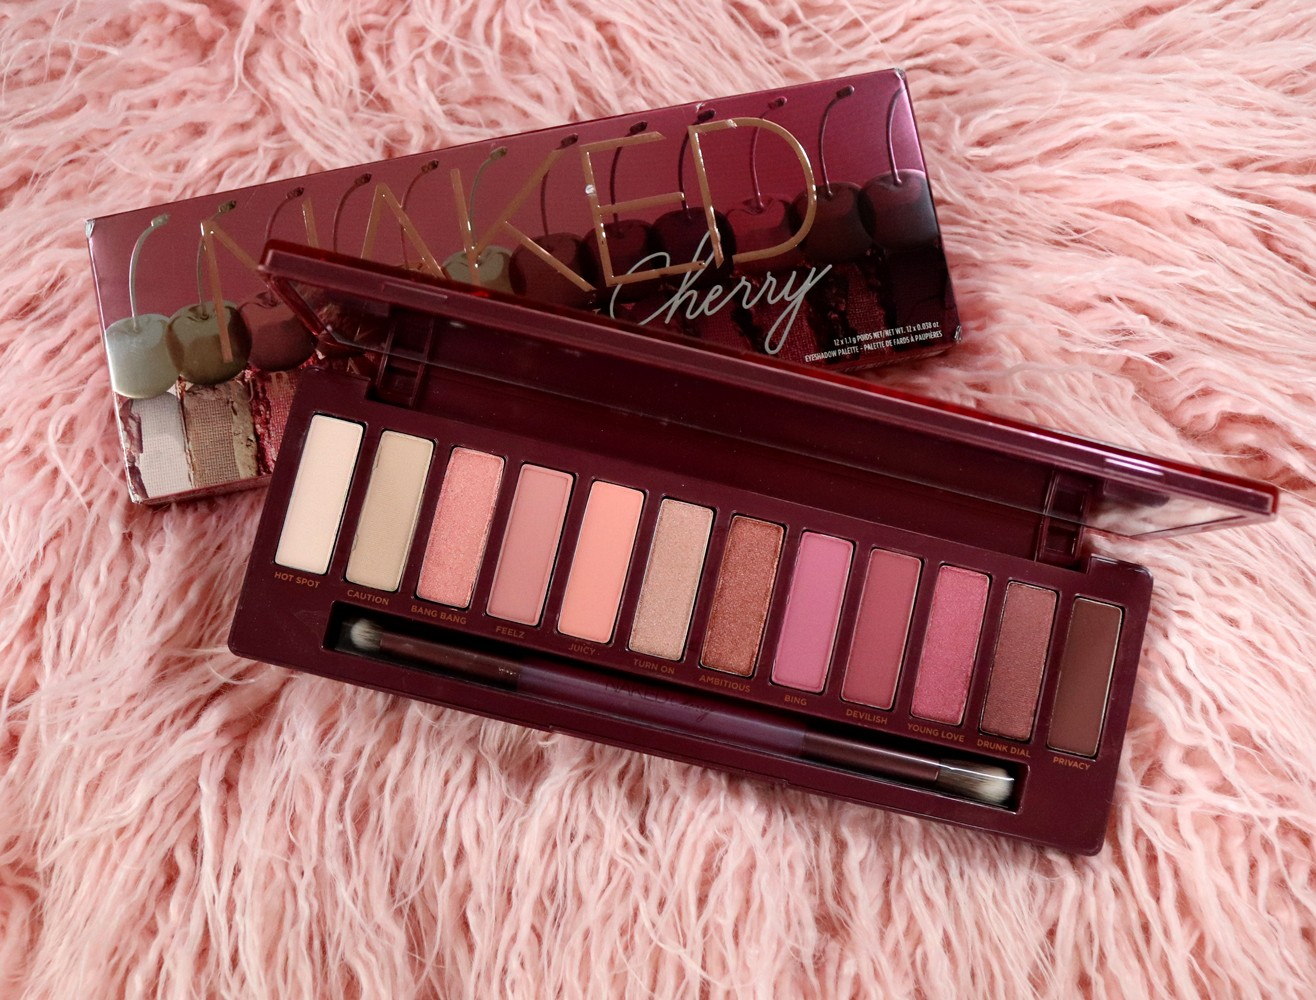 Cruelty Free Gift Guide - Urban Decay Naked Cherry Palette